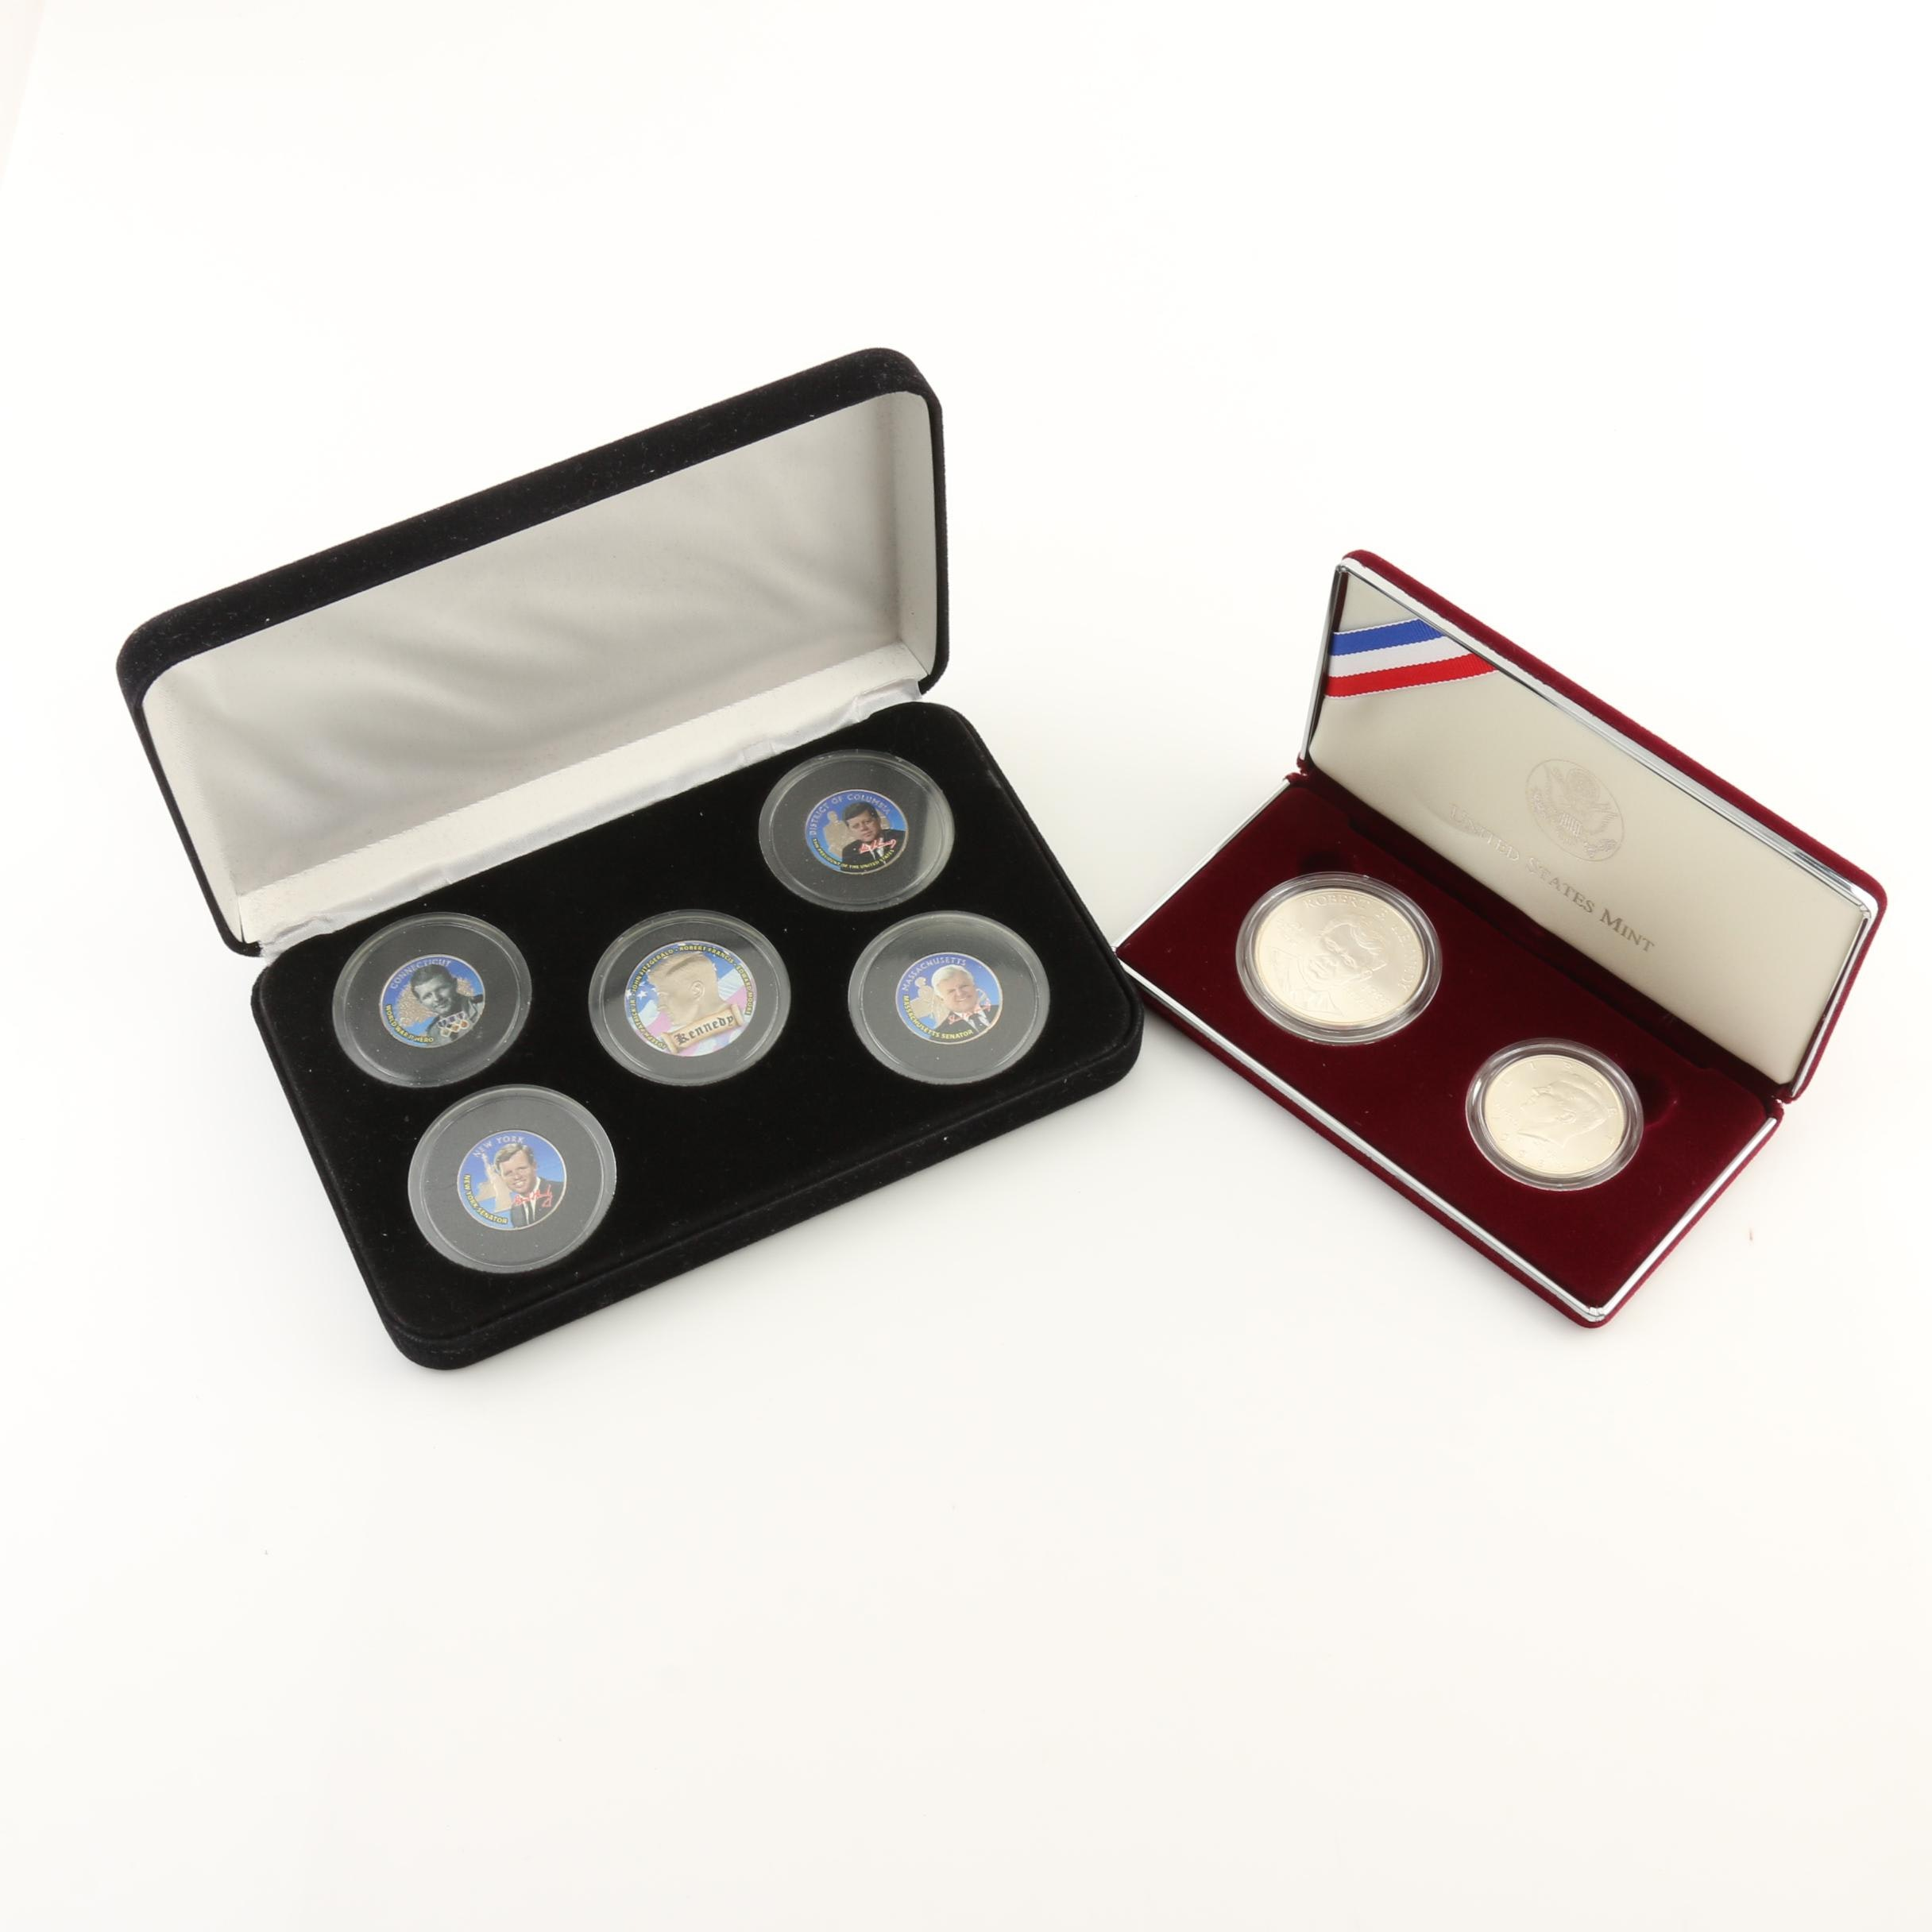 Two Kennedy-Related Coin Sets